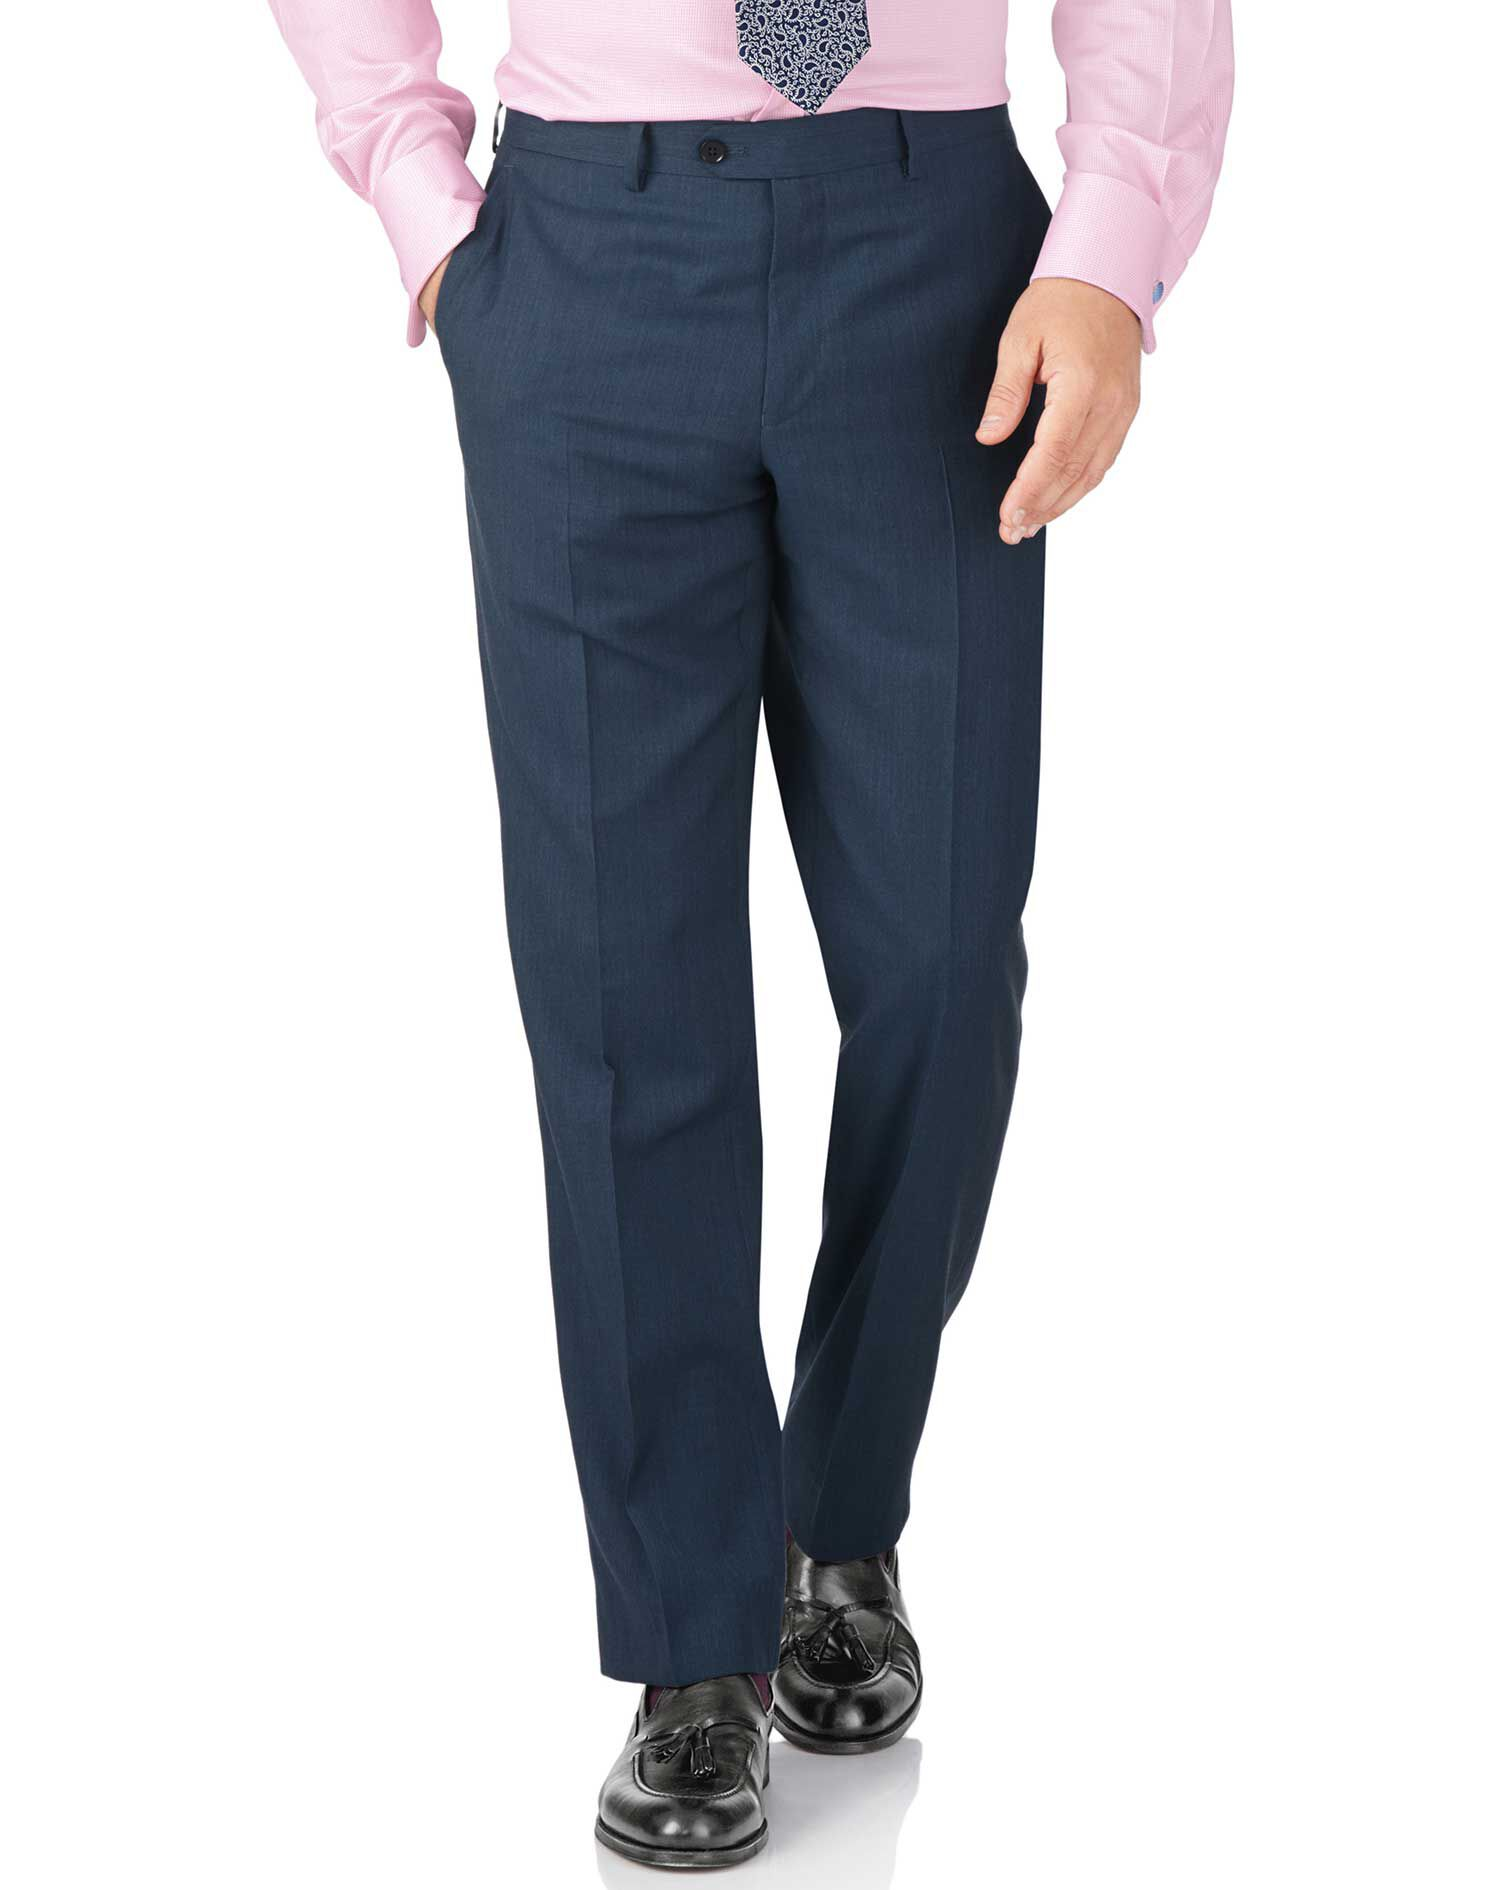 Blue Classic Fit Twill Business Suit Trouser Size W32 L34 by Charles Tyrwhitt